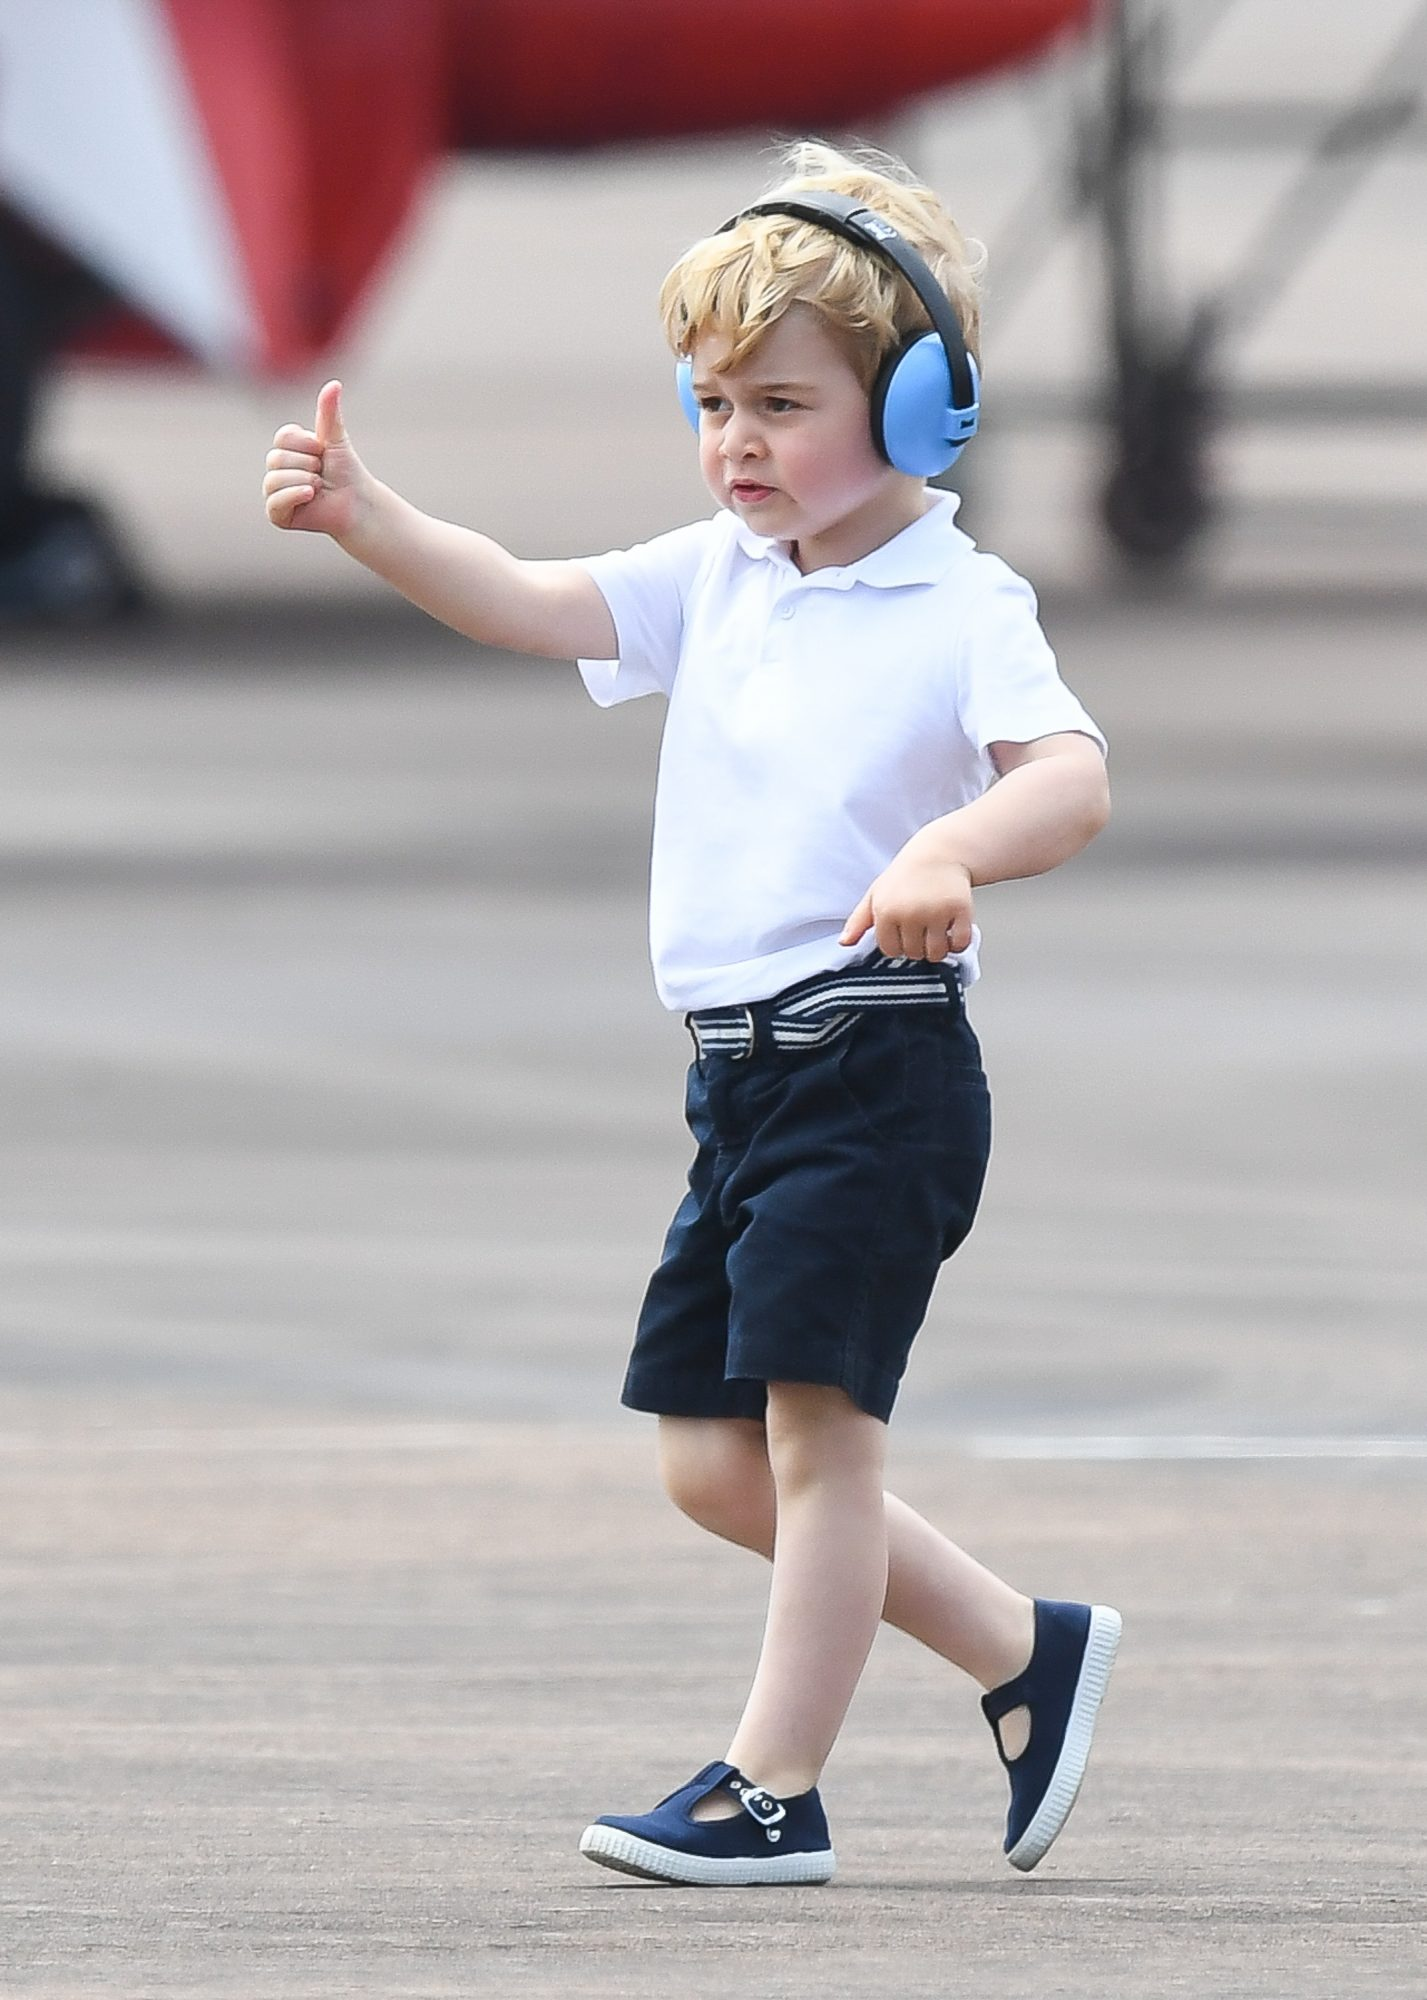 Our Prince Charming! 15 Adorable Photos of George Thumbs Up